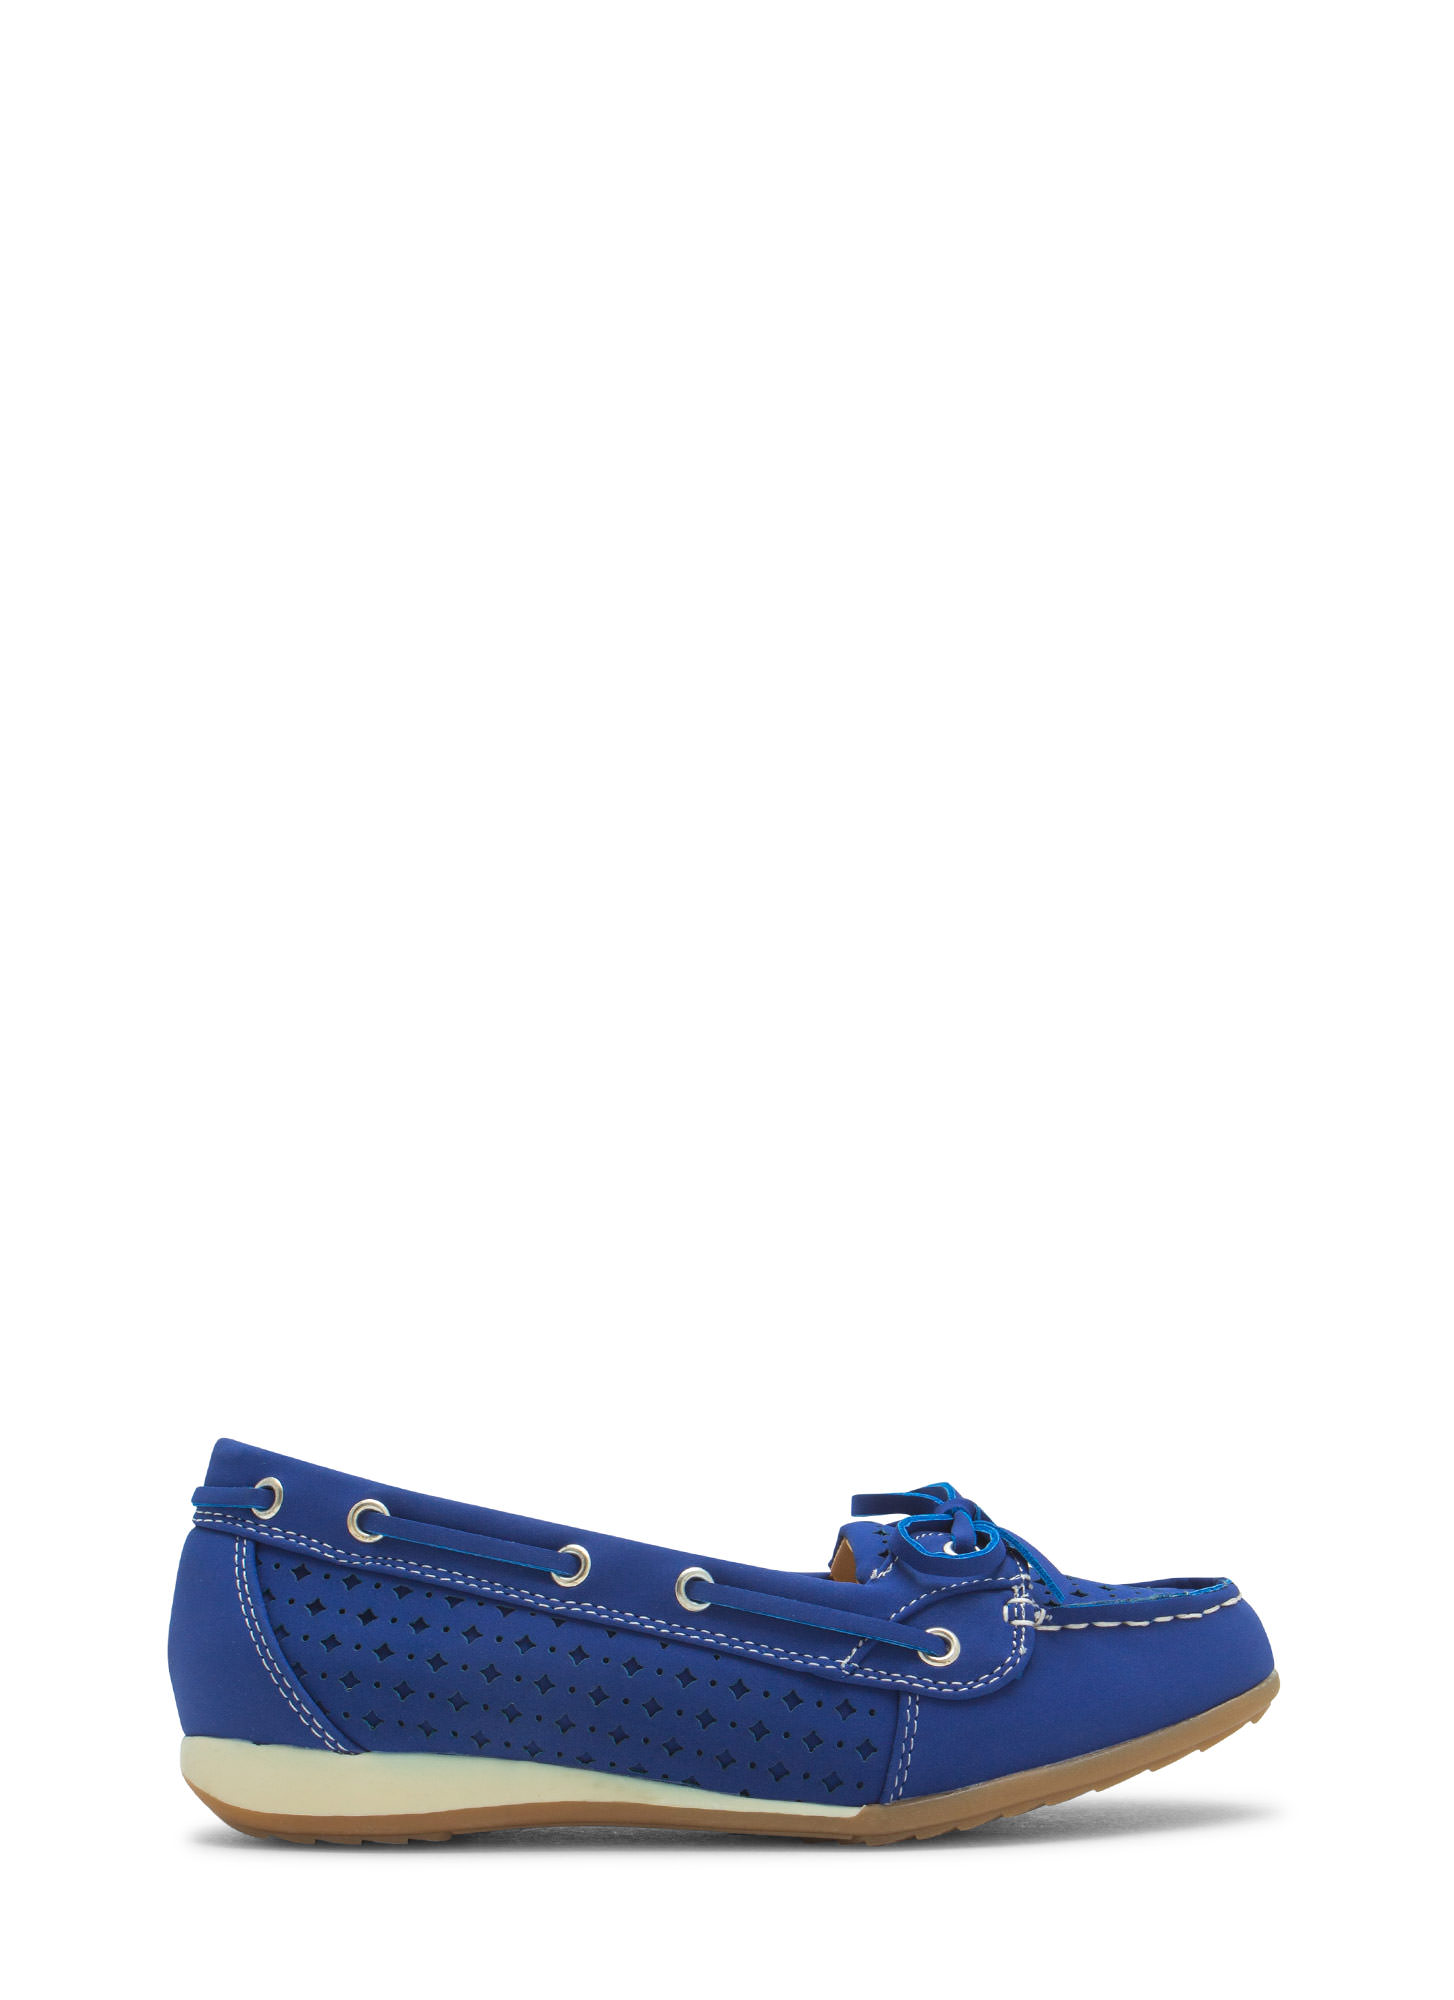 Perforated Faux Nubuck Boat Flats BLUE